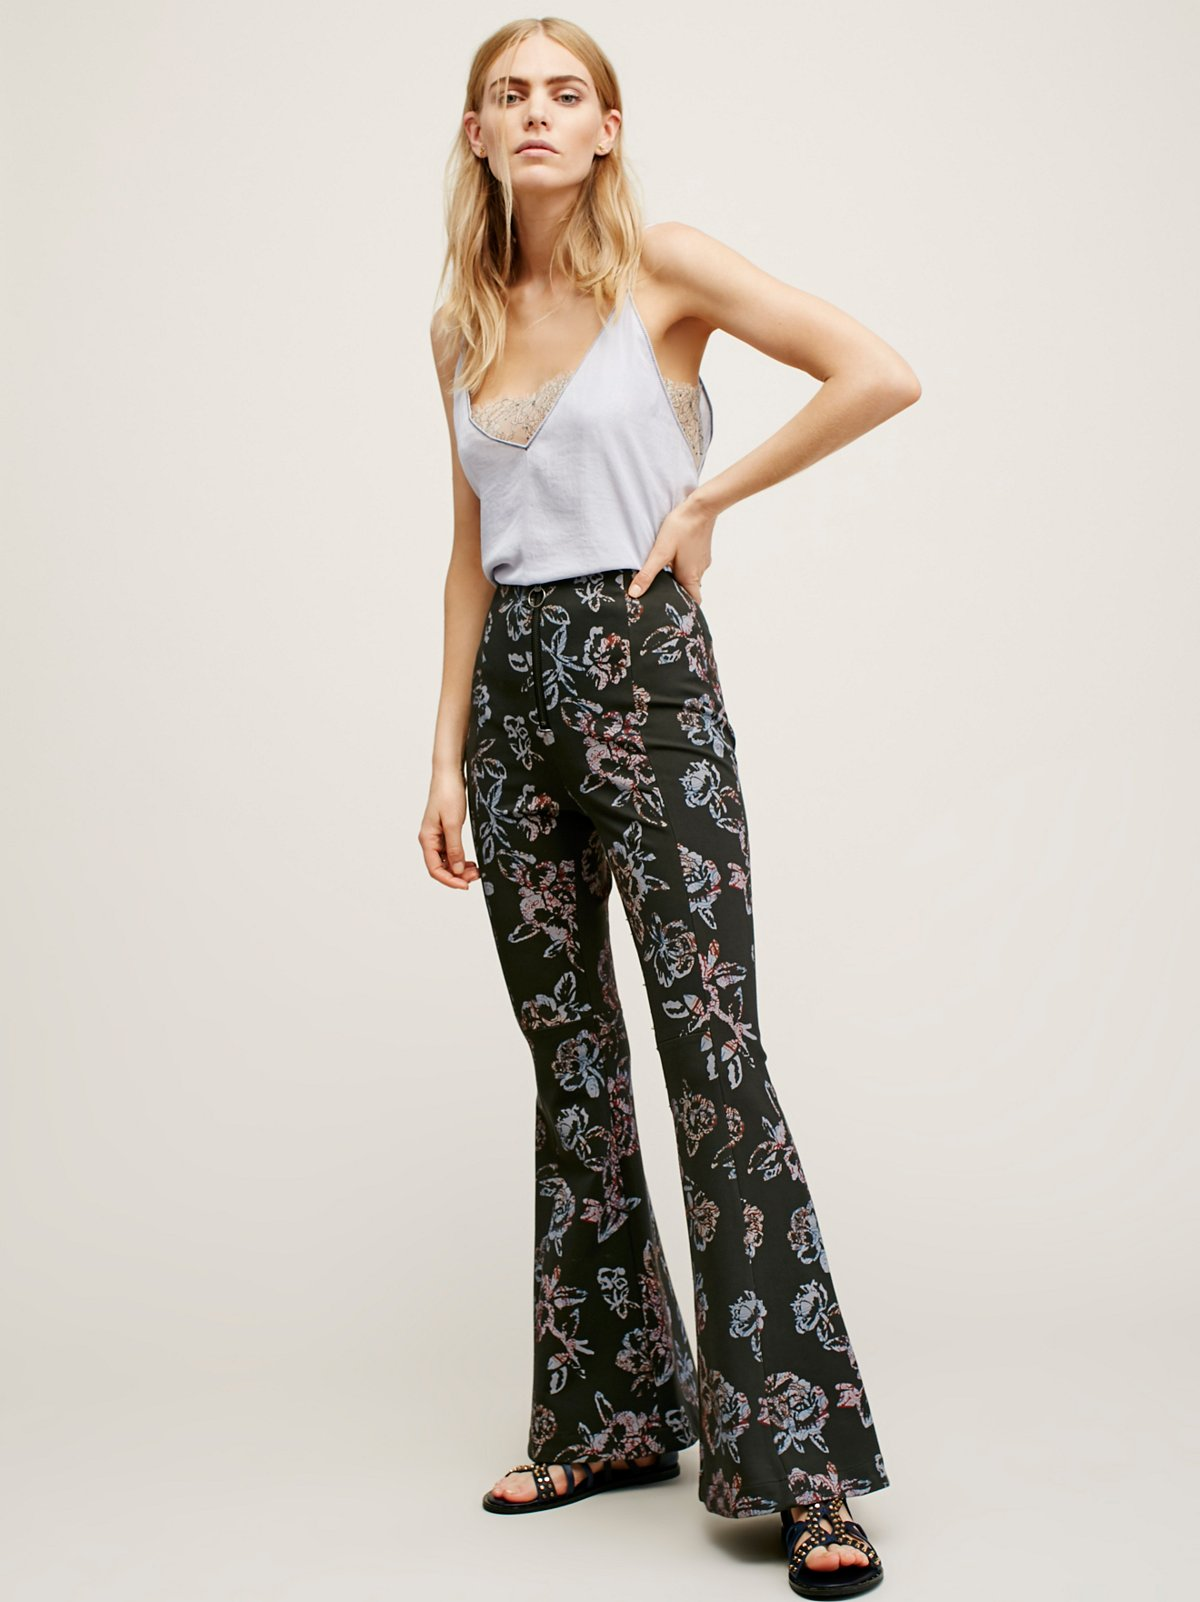 Born to be Wild Printed Pant